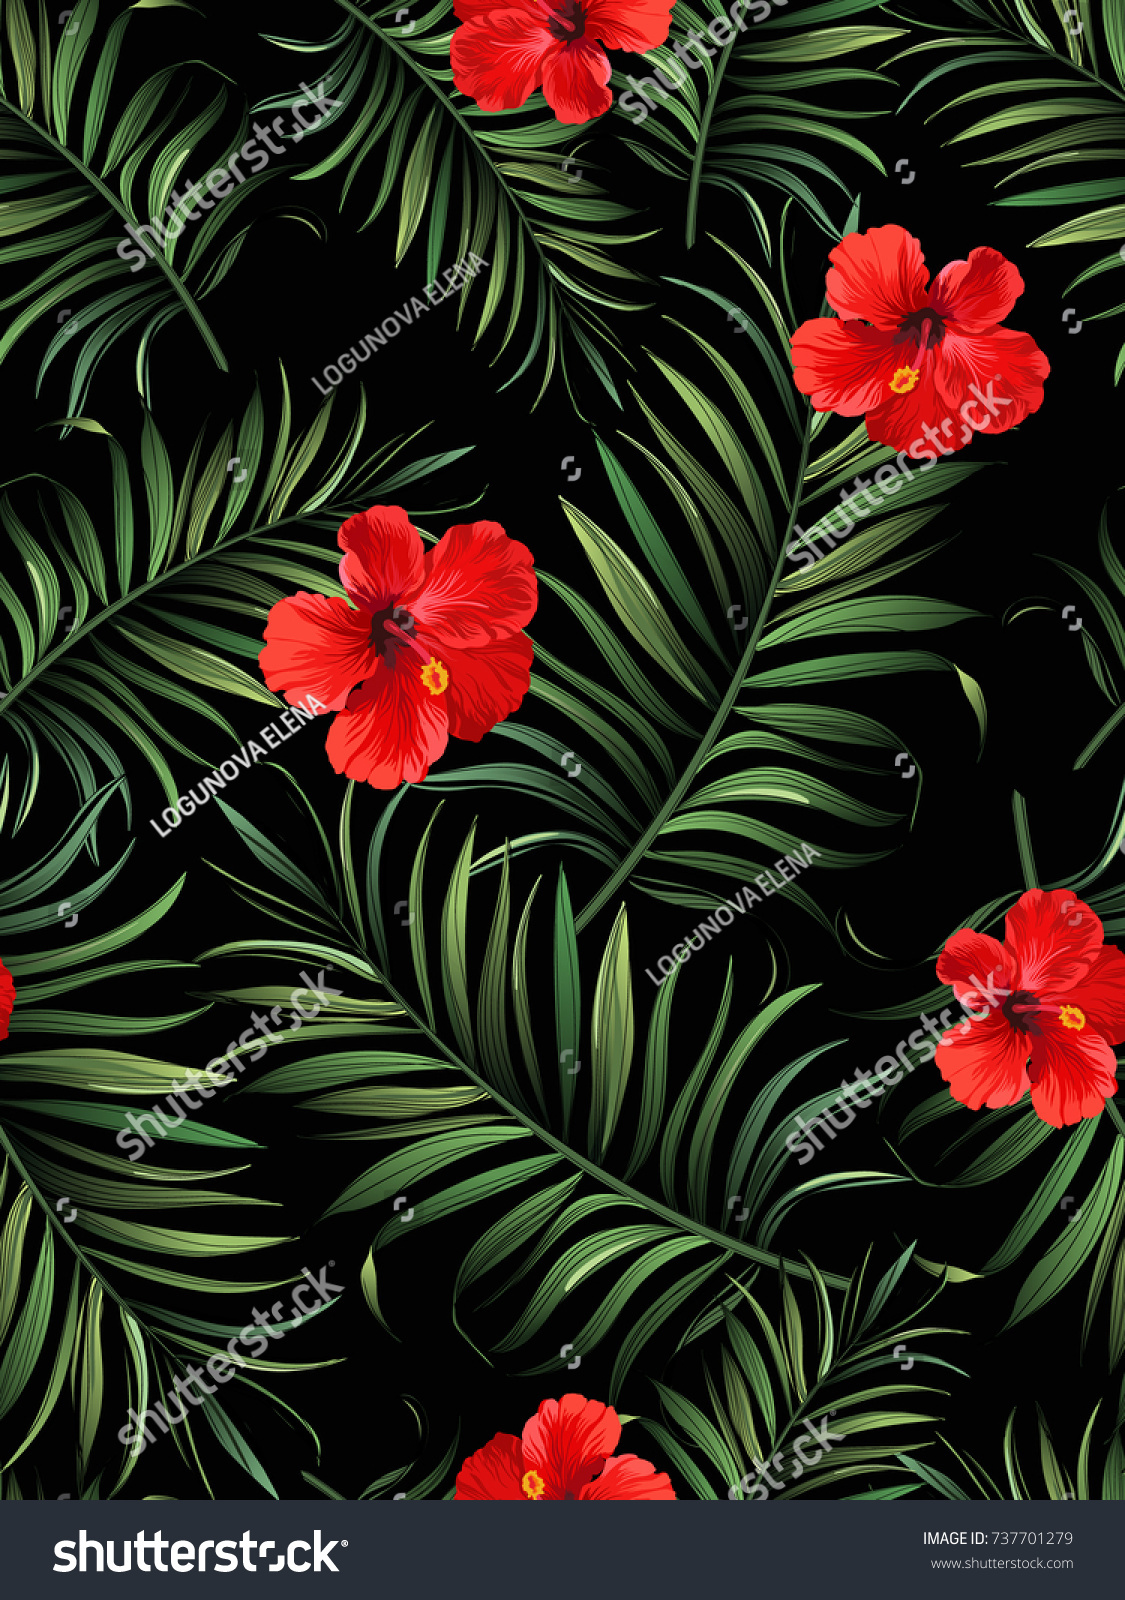 Exotic tropical background hawaiian plants flowers stock vector exotic tropical background with hawaiian plants and flowers seamless vector pattern with palm leaves and izmirmasajfo